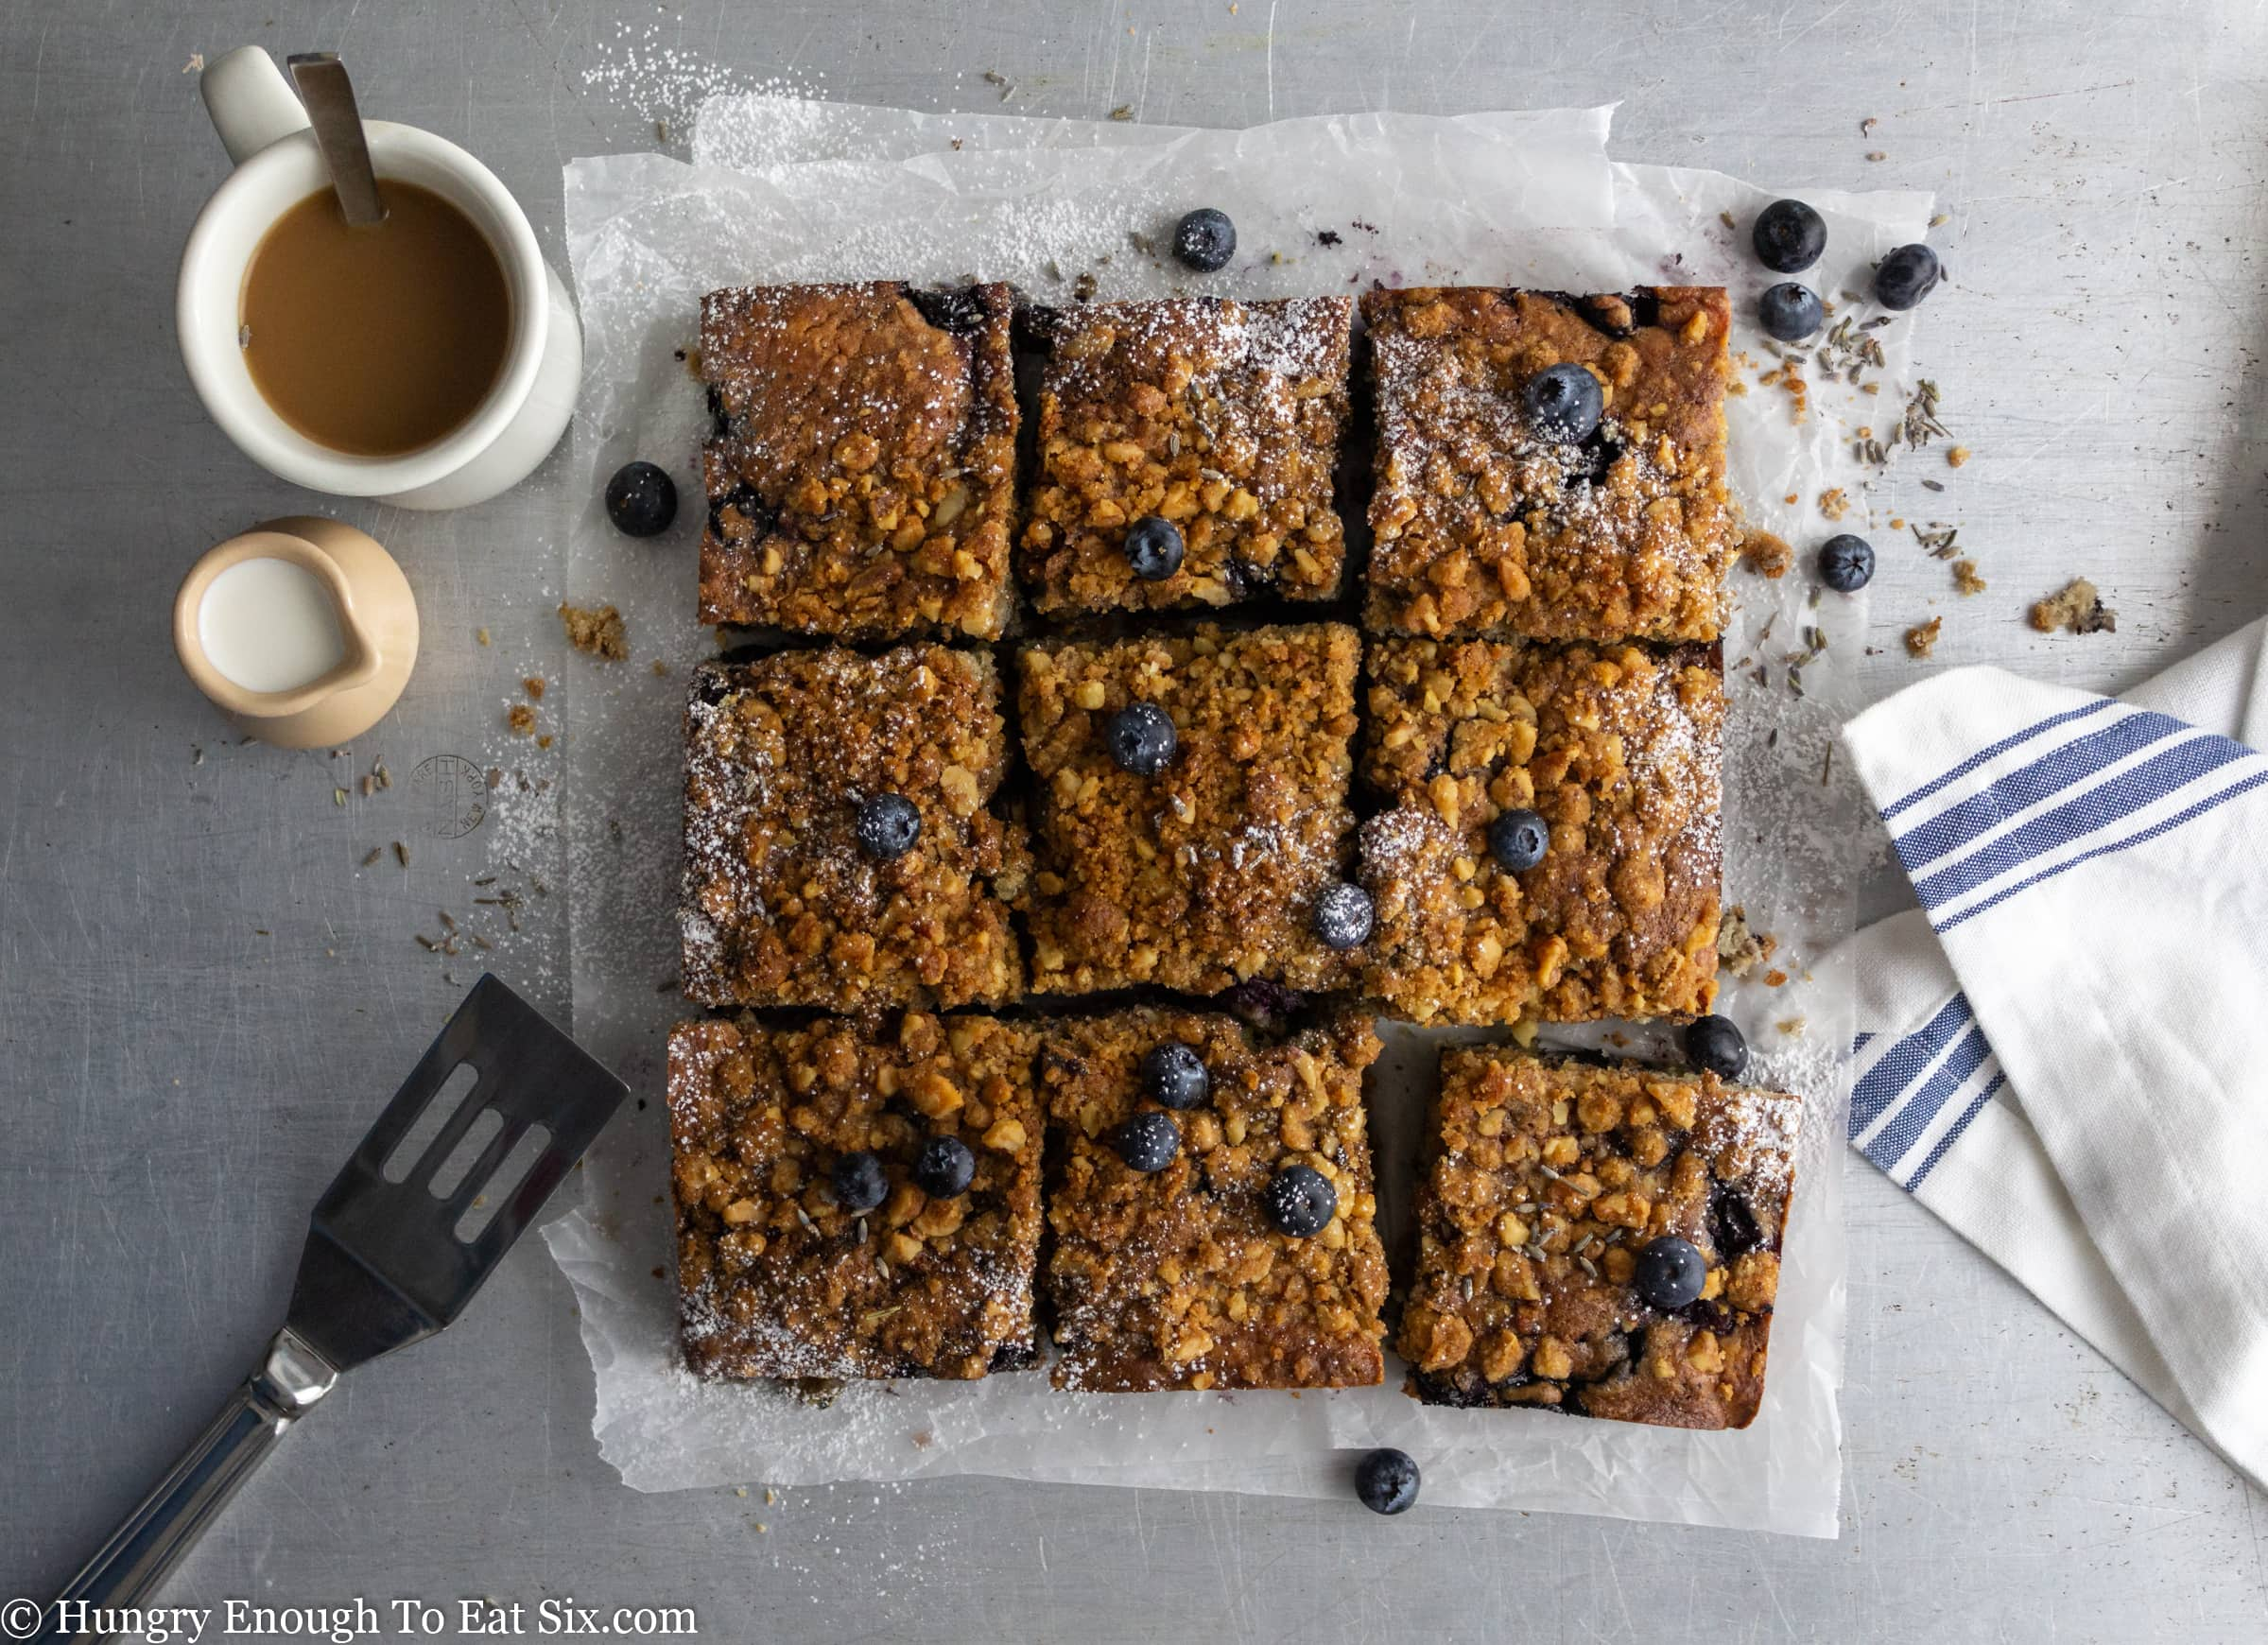 Nine squares of crumble topped coffee cake with blueberries.